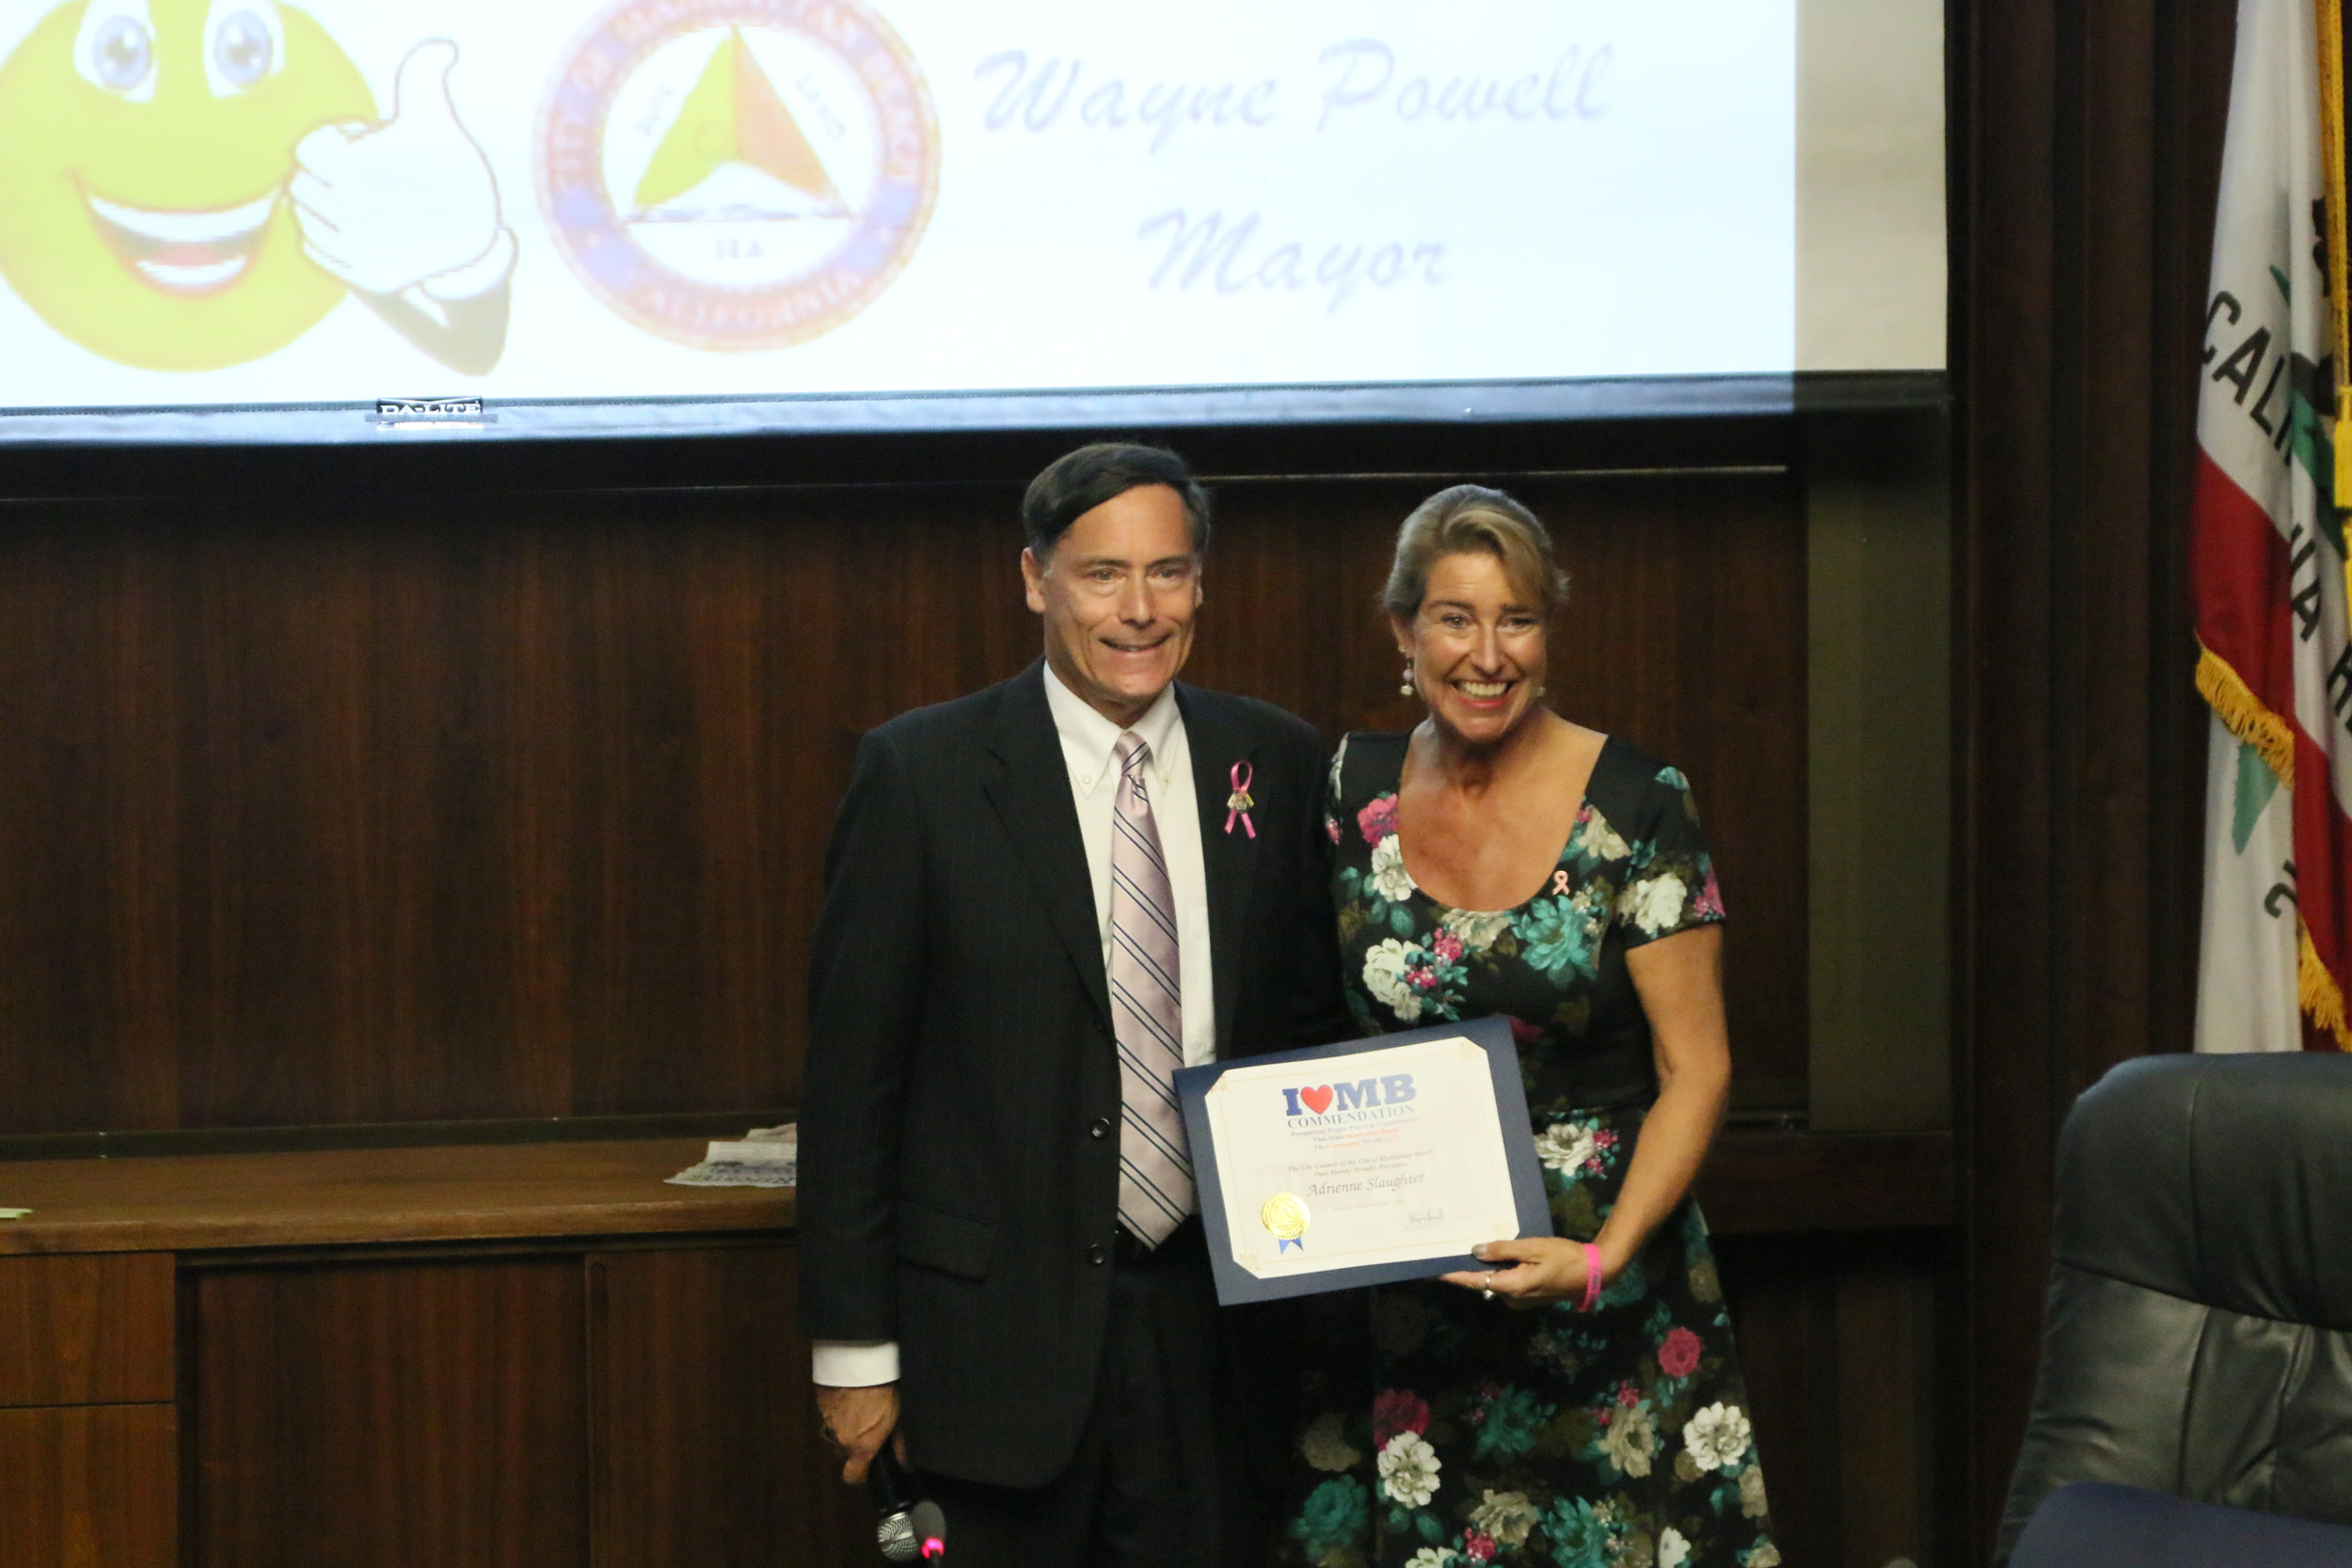 Manhattan Beach Mayor Wayne Powell presents Certificate of Commendation to Adrienne Slaughter, October 2014, at Manhattan Beach City Council.